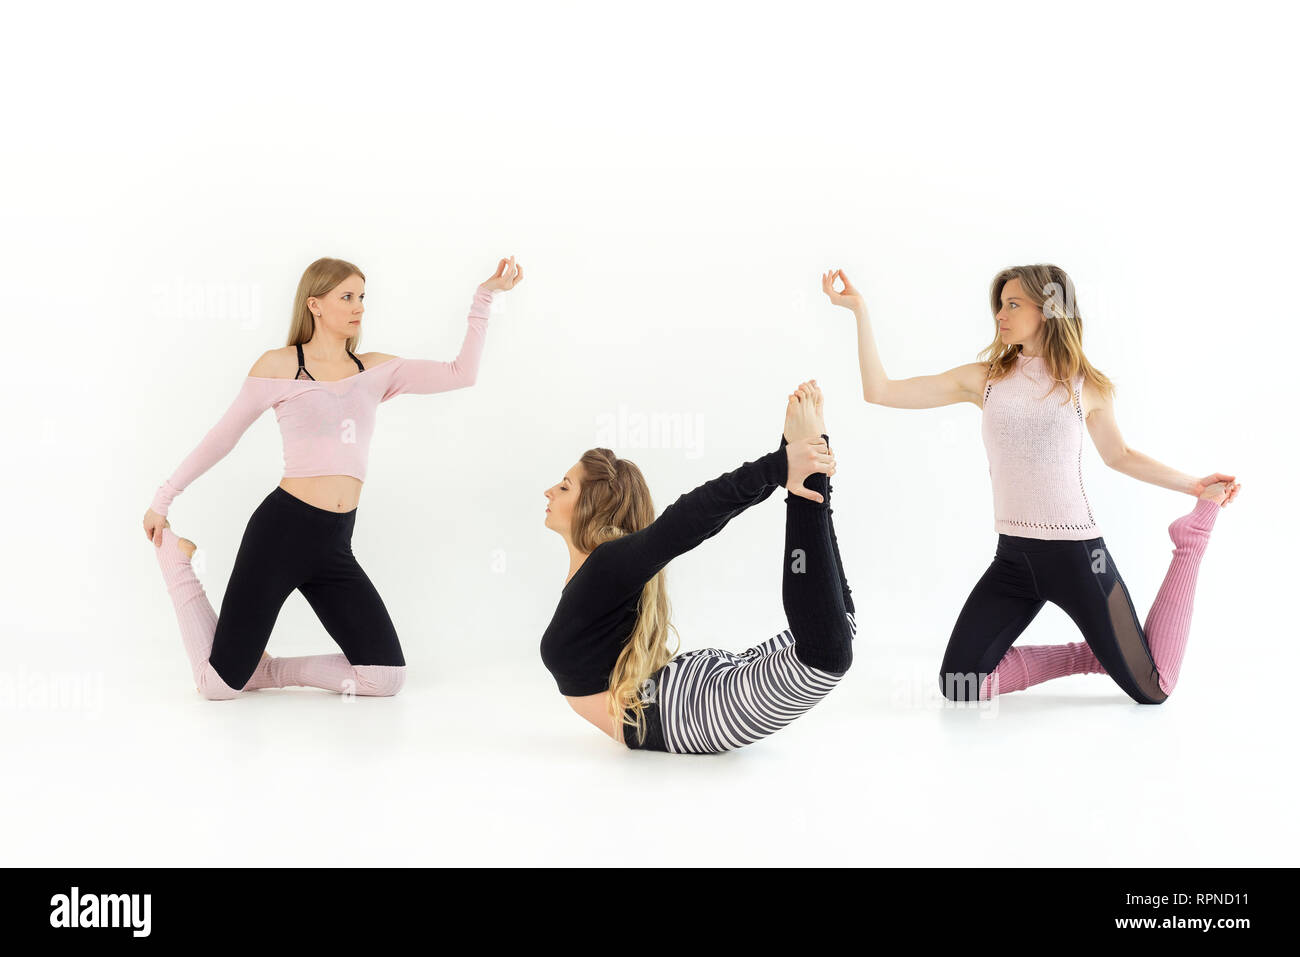 Yoga Poses With Three People